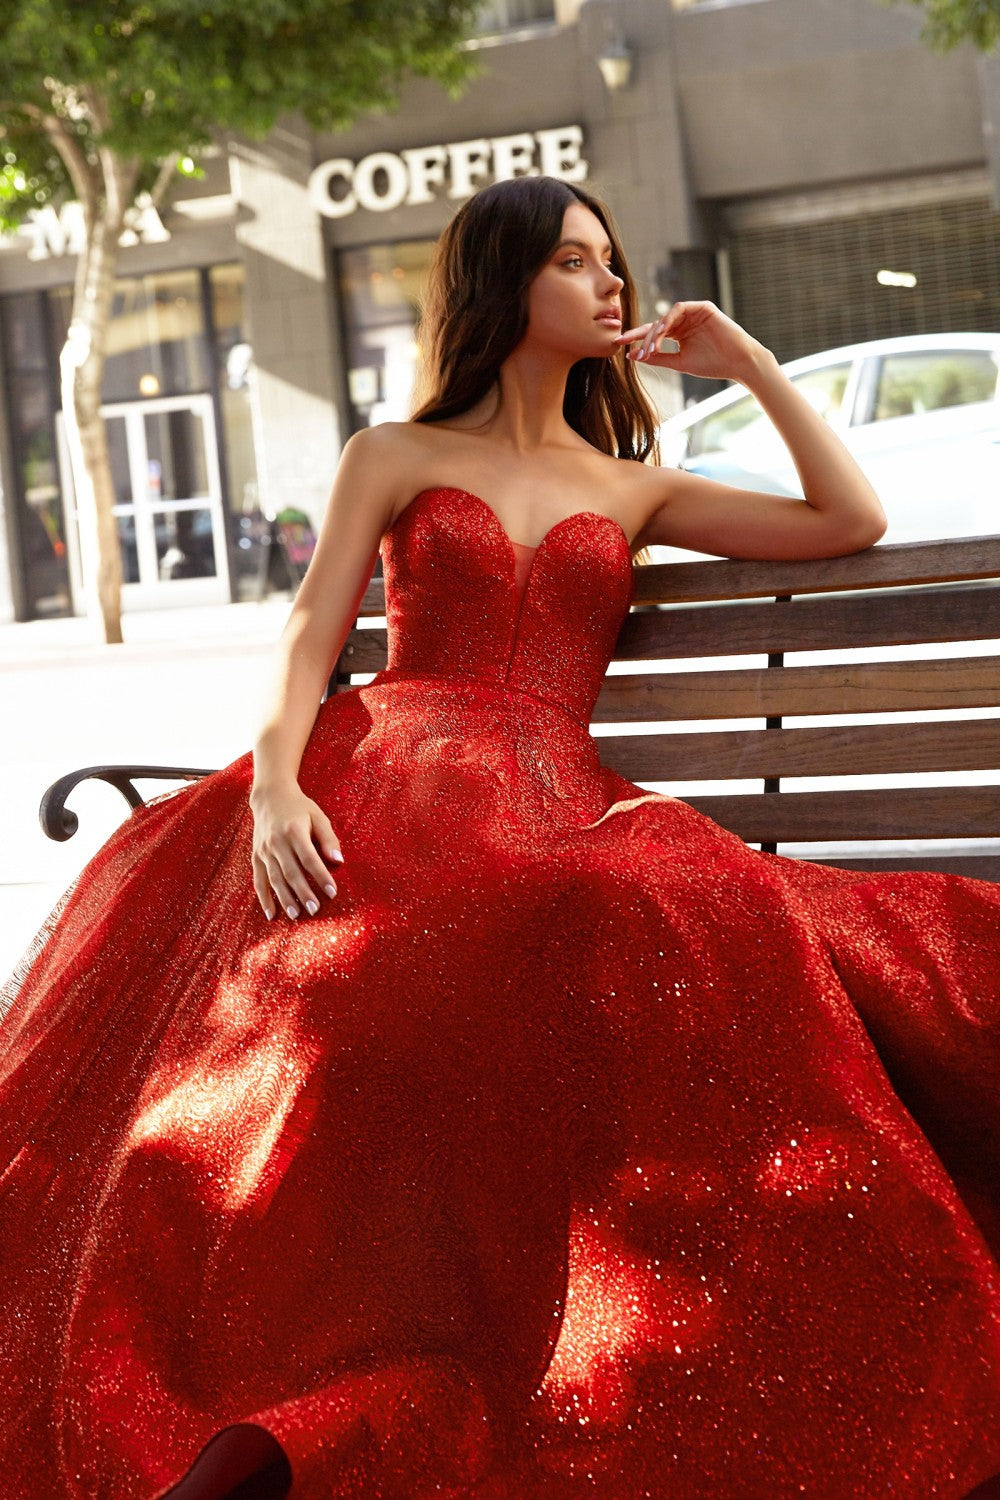 Strapless Ball Gown With Glitter Swirl Detail And Corset Lace Up Back